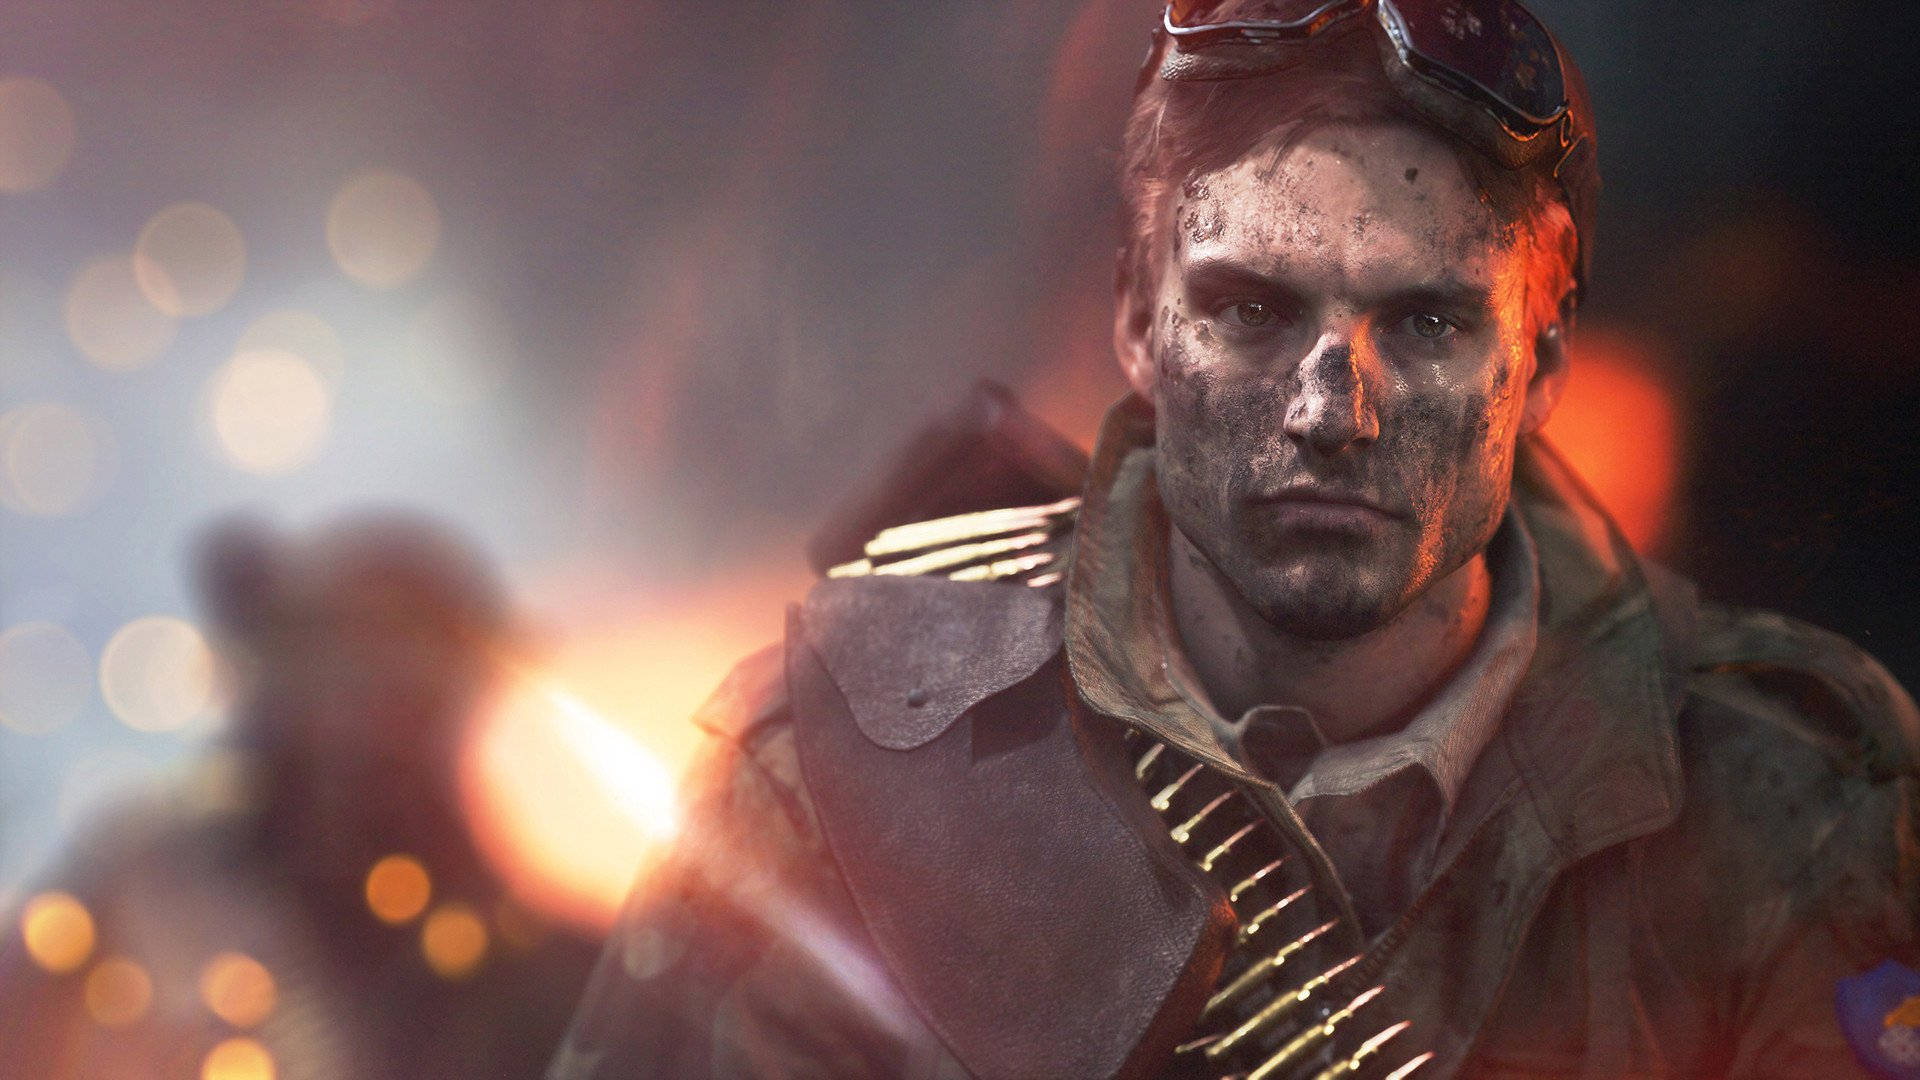 DICE putting 'fun over authenticity' according to Battlefield producer